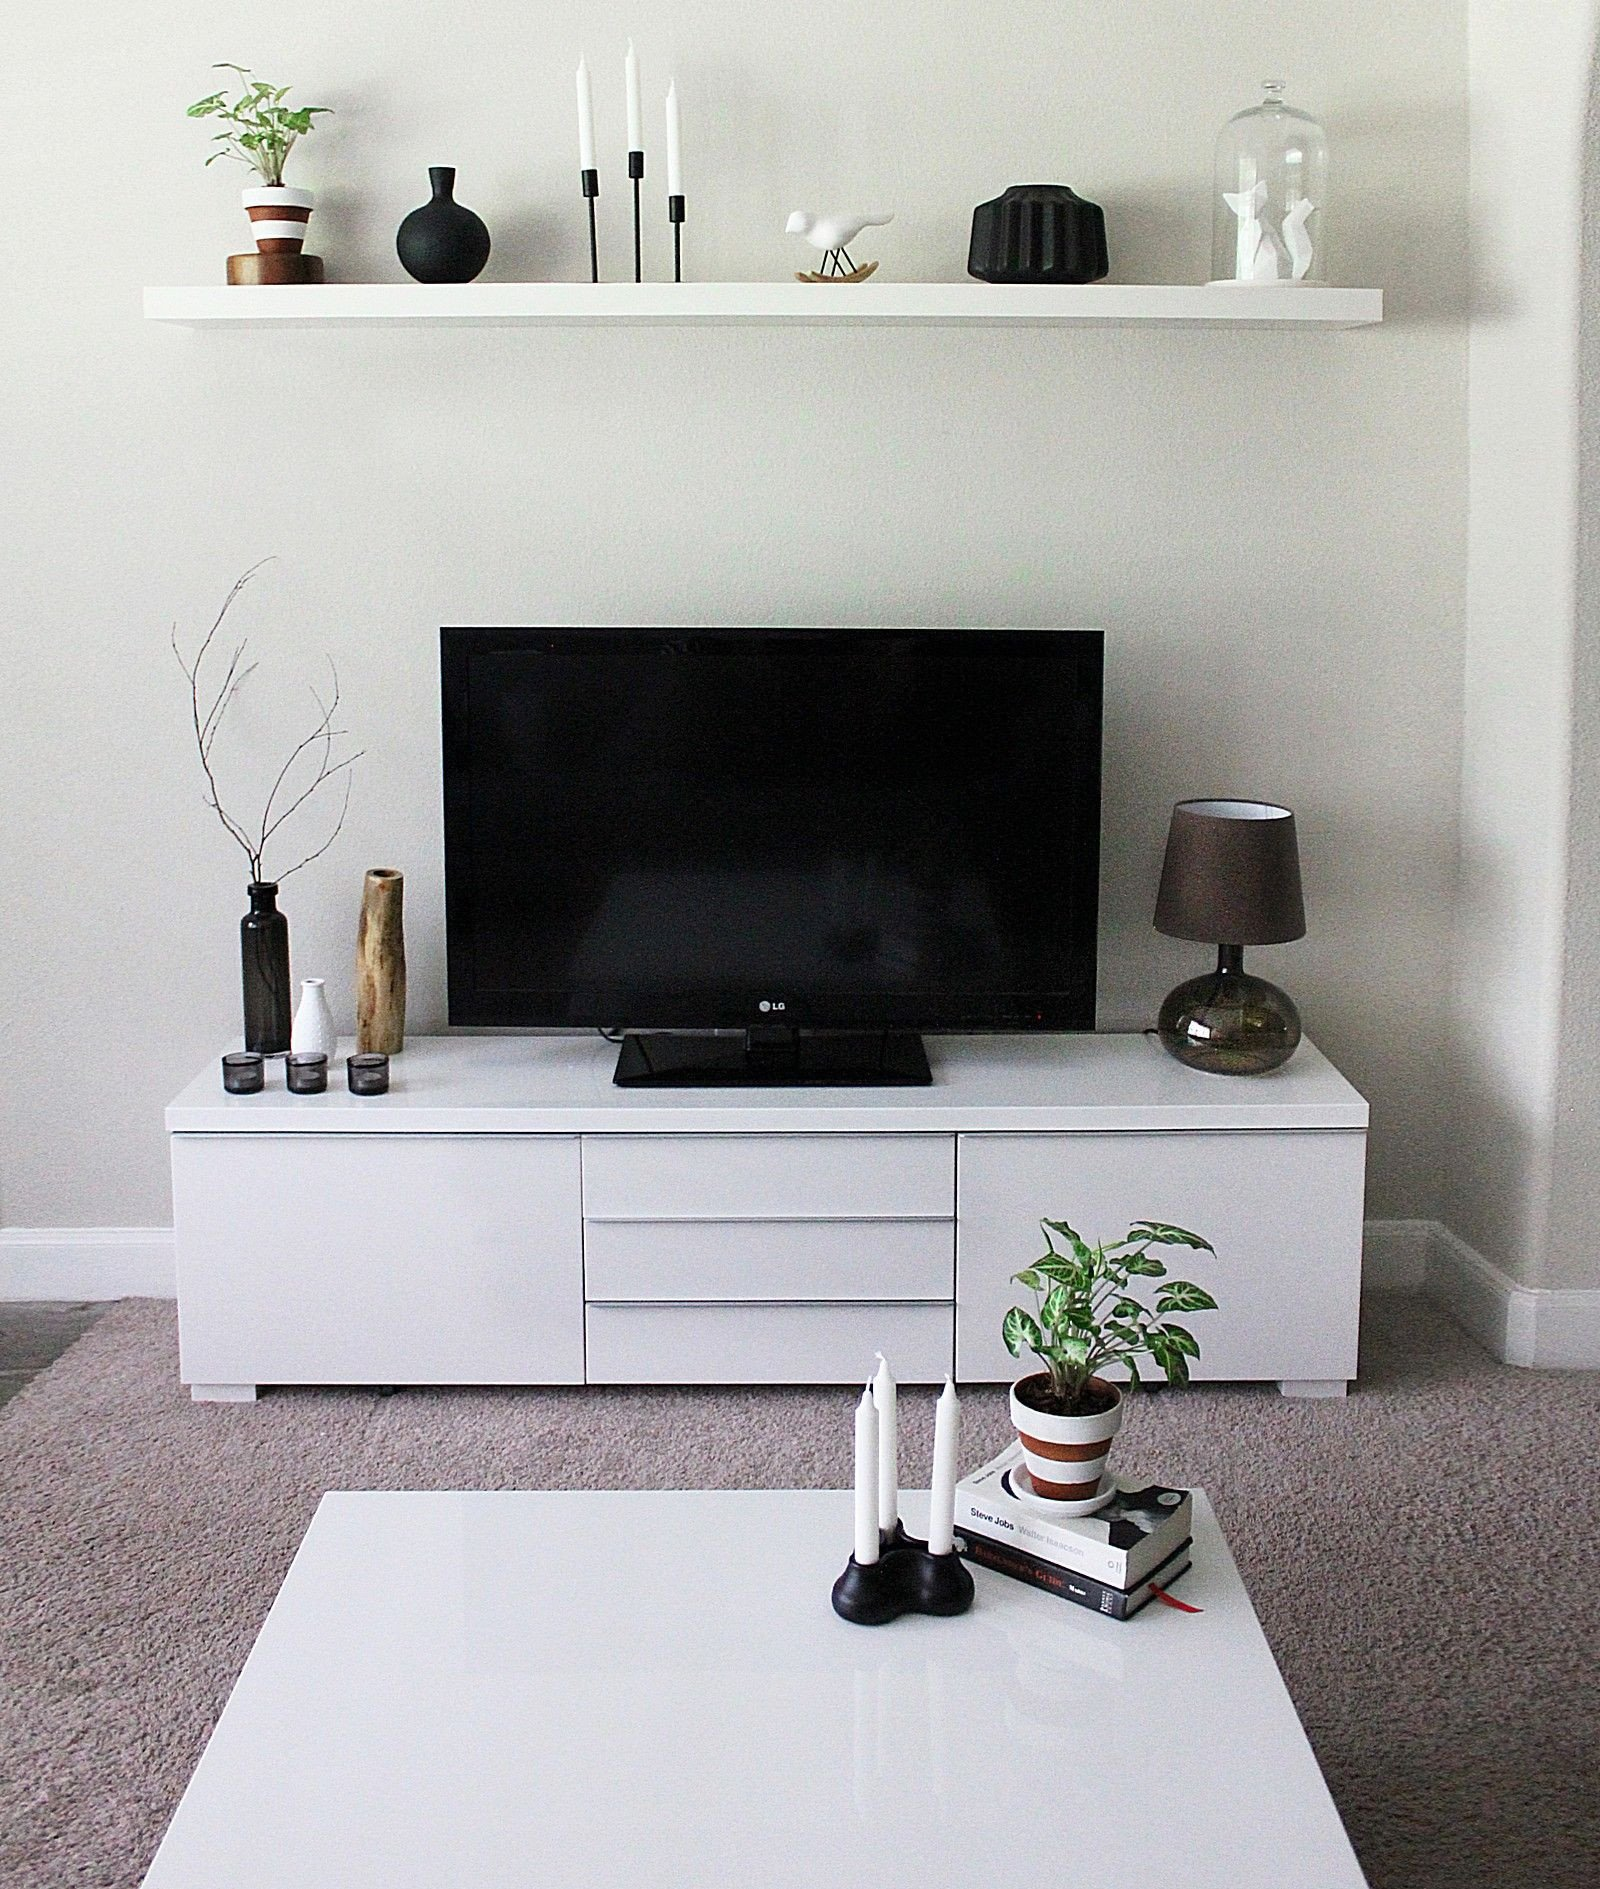 Living Room Ideas Tv Stand Minimalist Tv Stand and Cabinet Ikea Besta